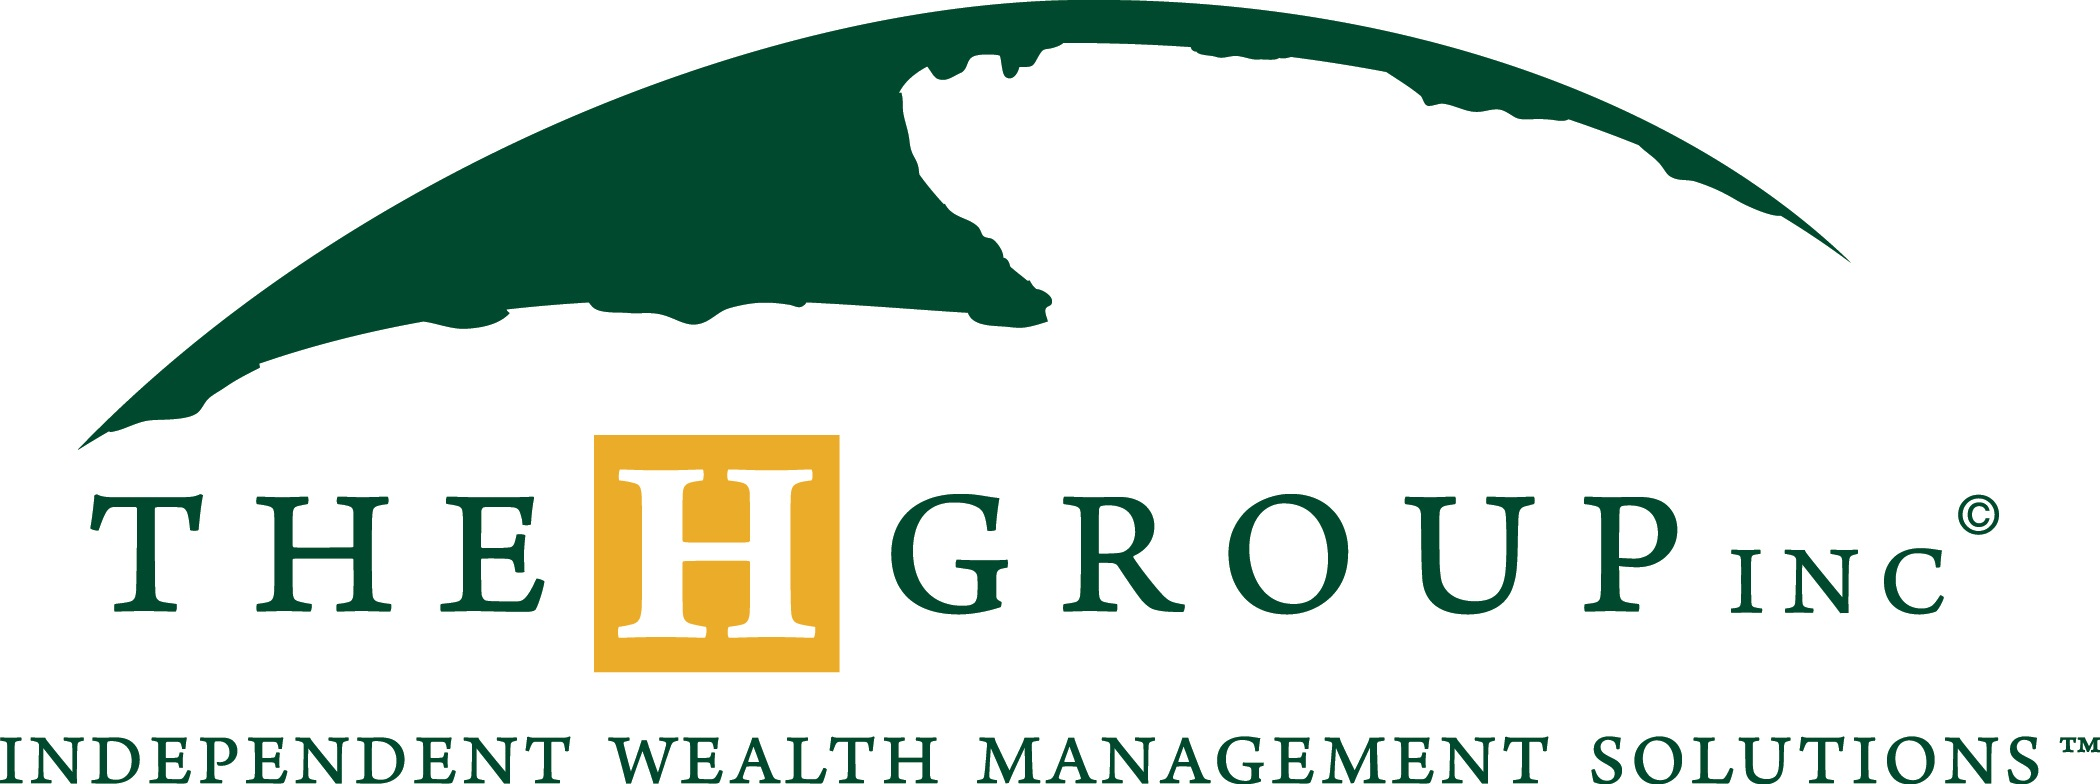 the h group